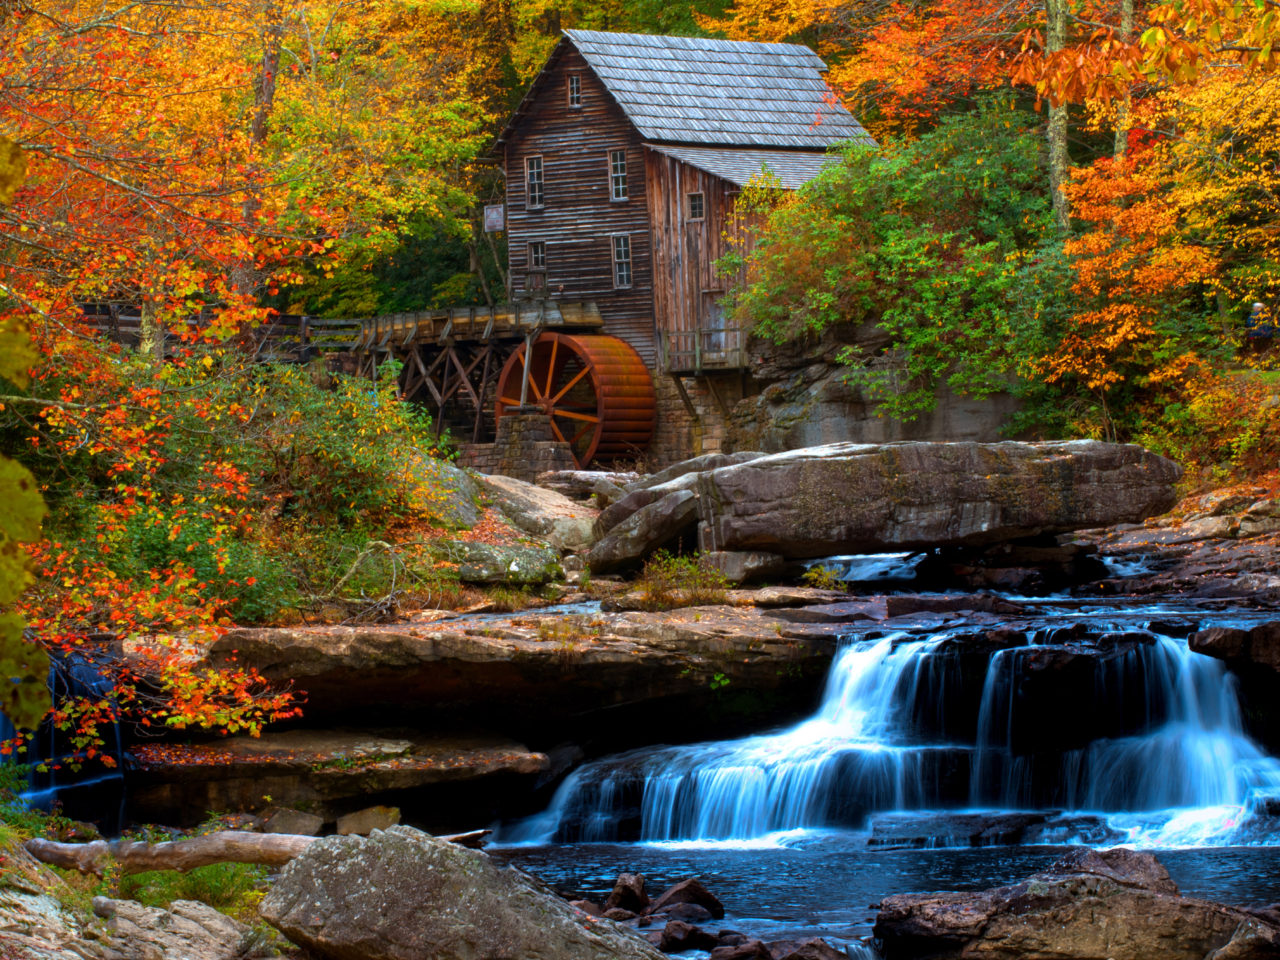 Windows Wallpaper Fall Old Wooden Mill Water Flow Rock Waterfall Hd Wallpaper For